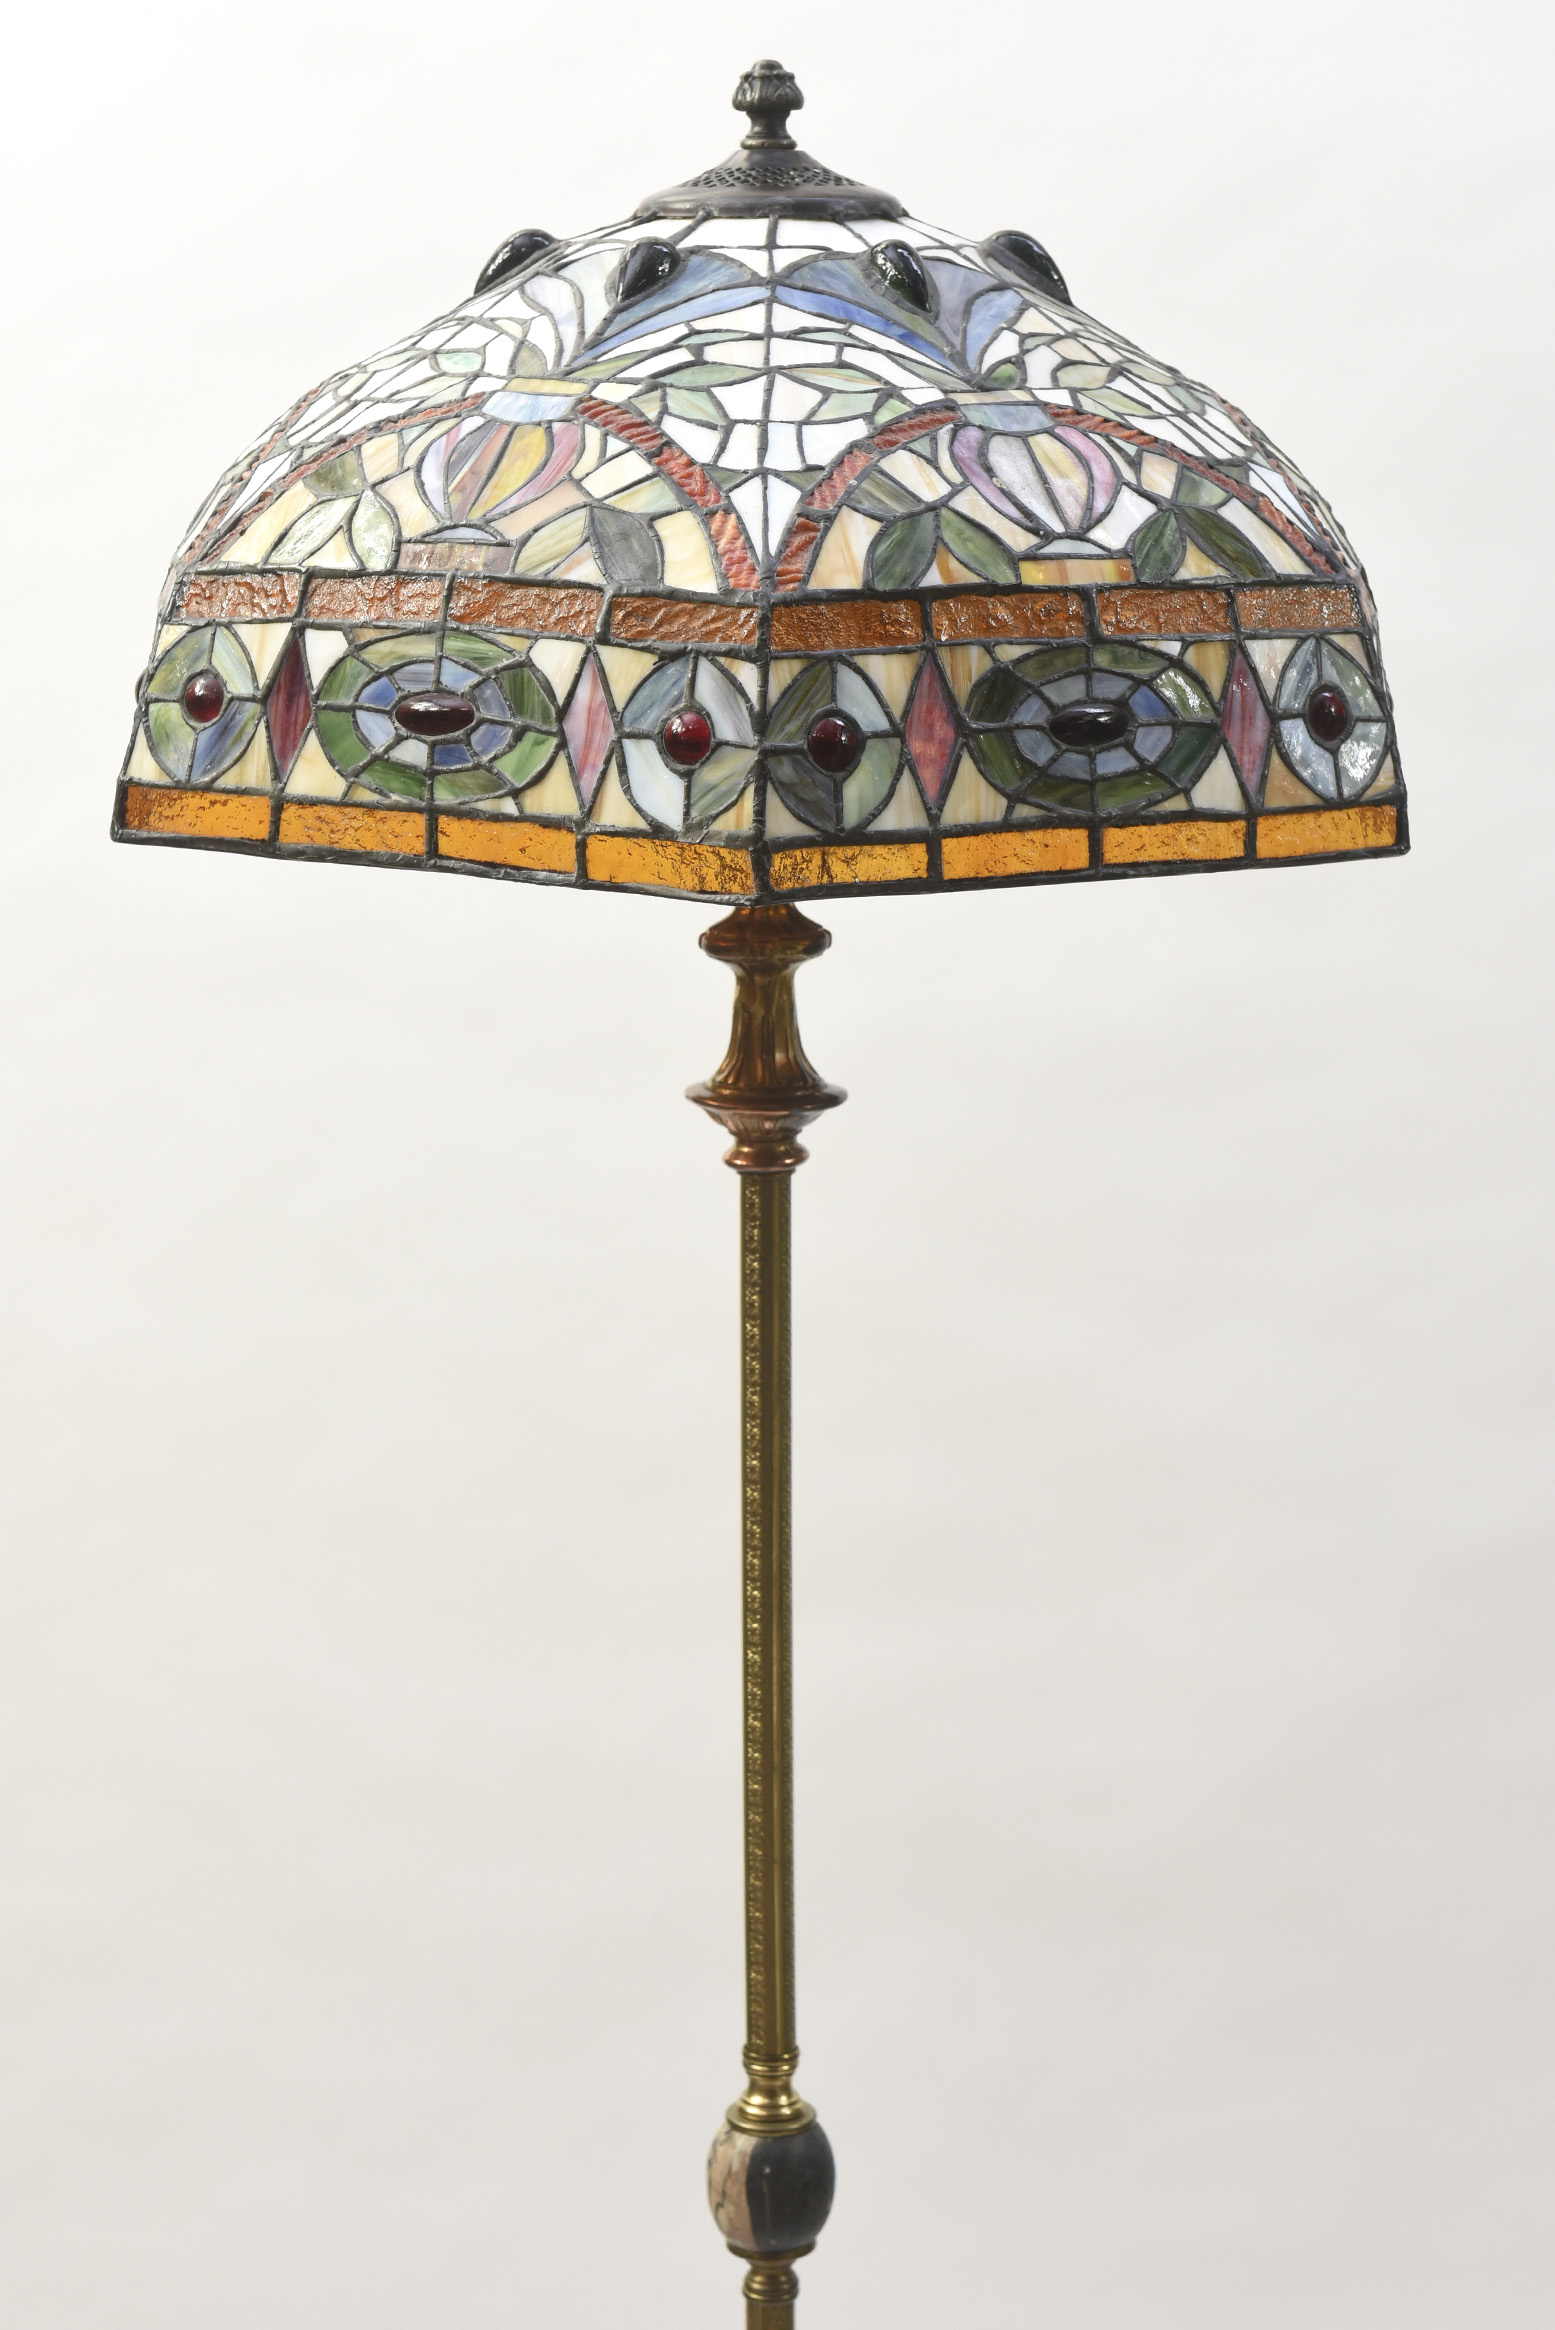 Early 20th Century Floor Lamp With Black Stone Base